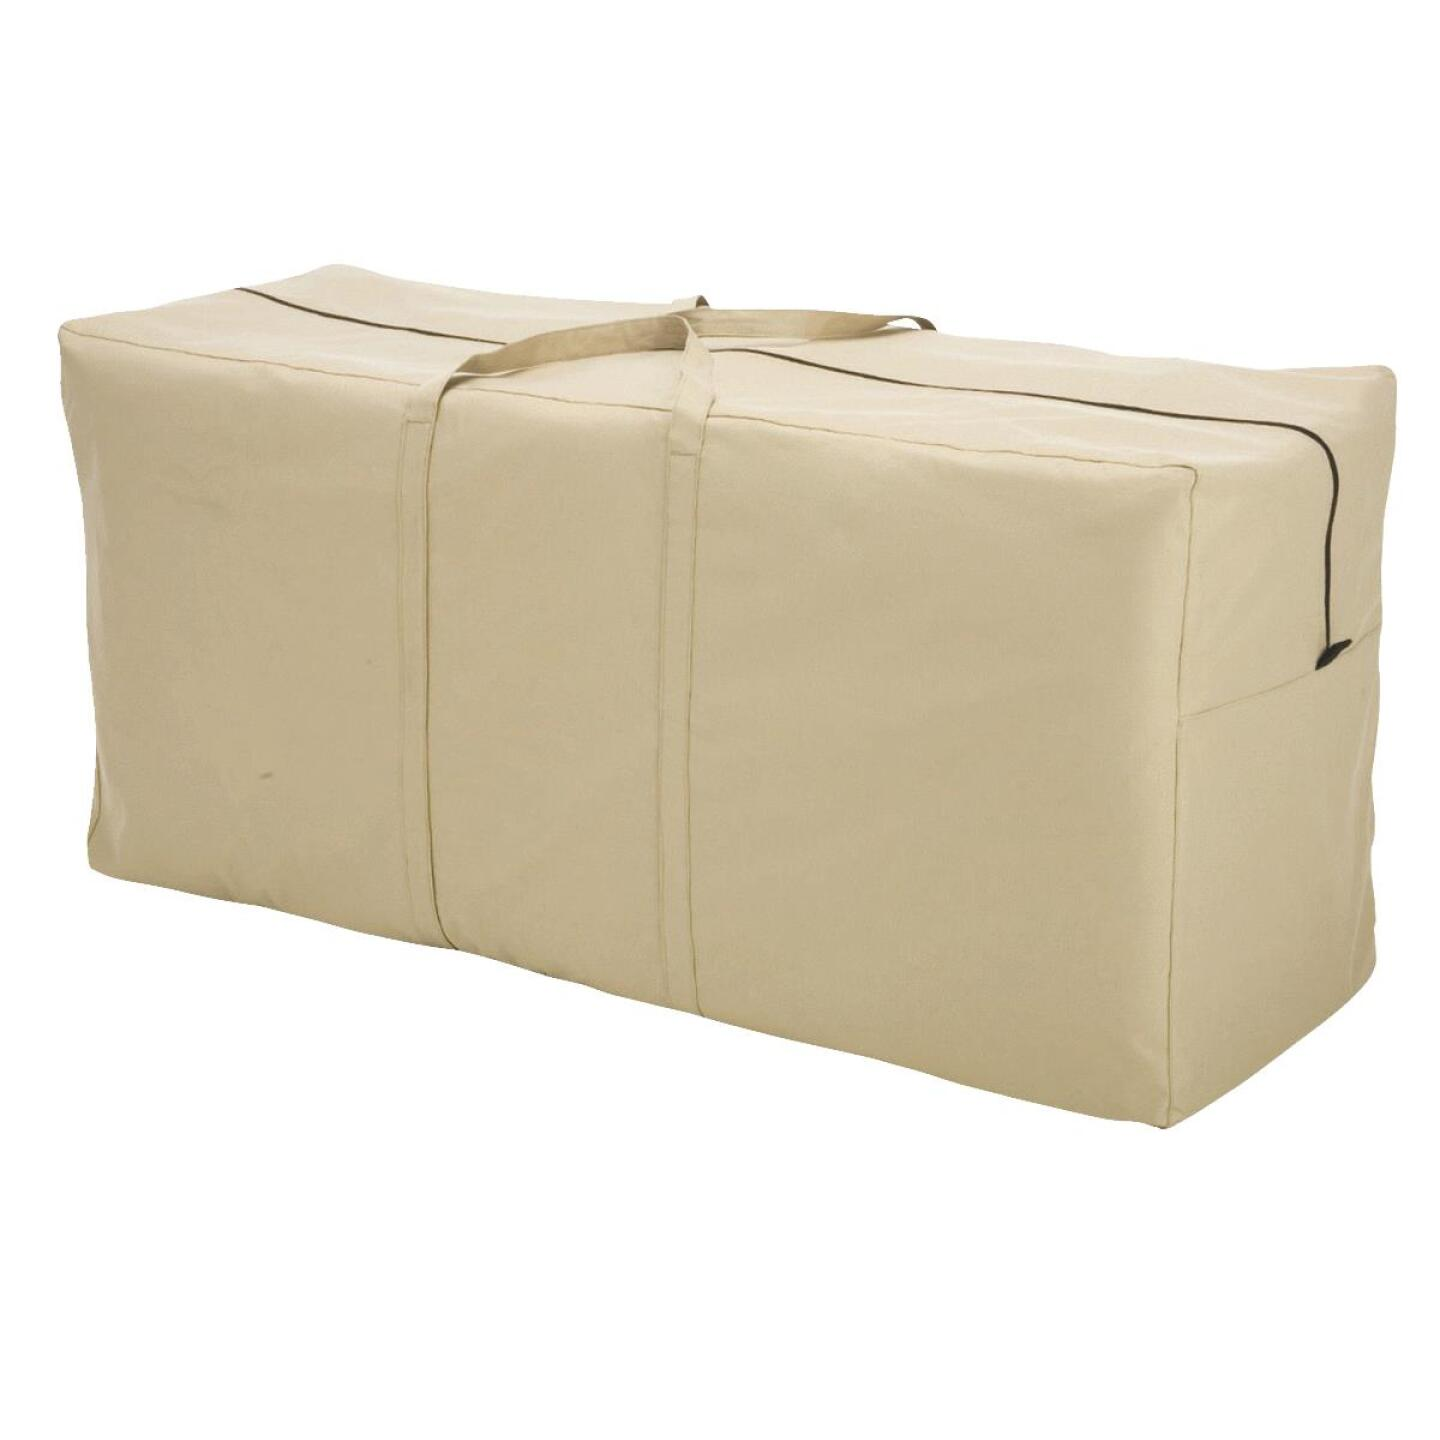 Classic Accessories 16.25 In. W. x 22.5 In. H. x 48 In. L. Tan Polyester/PVC Cushion Cover Image 1